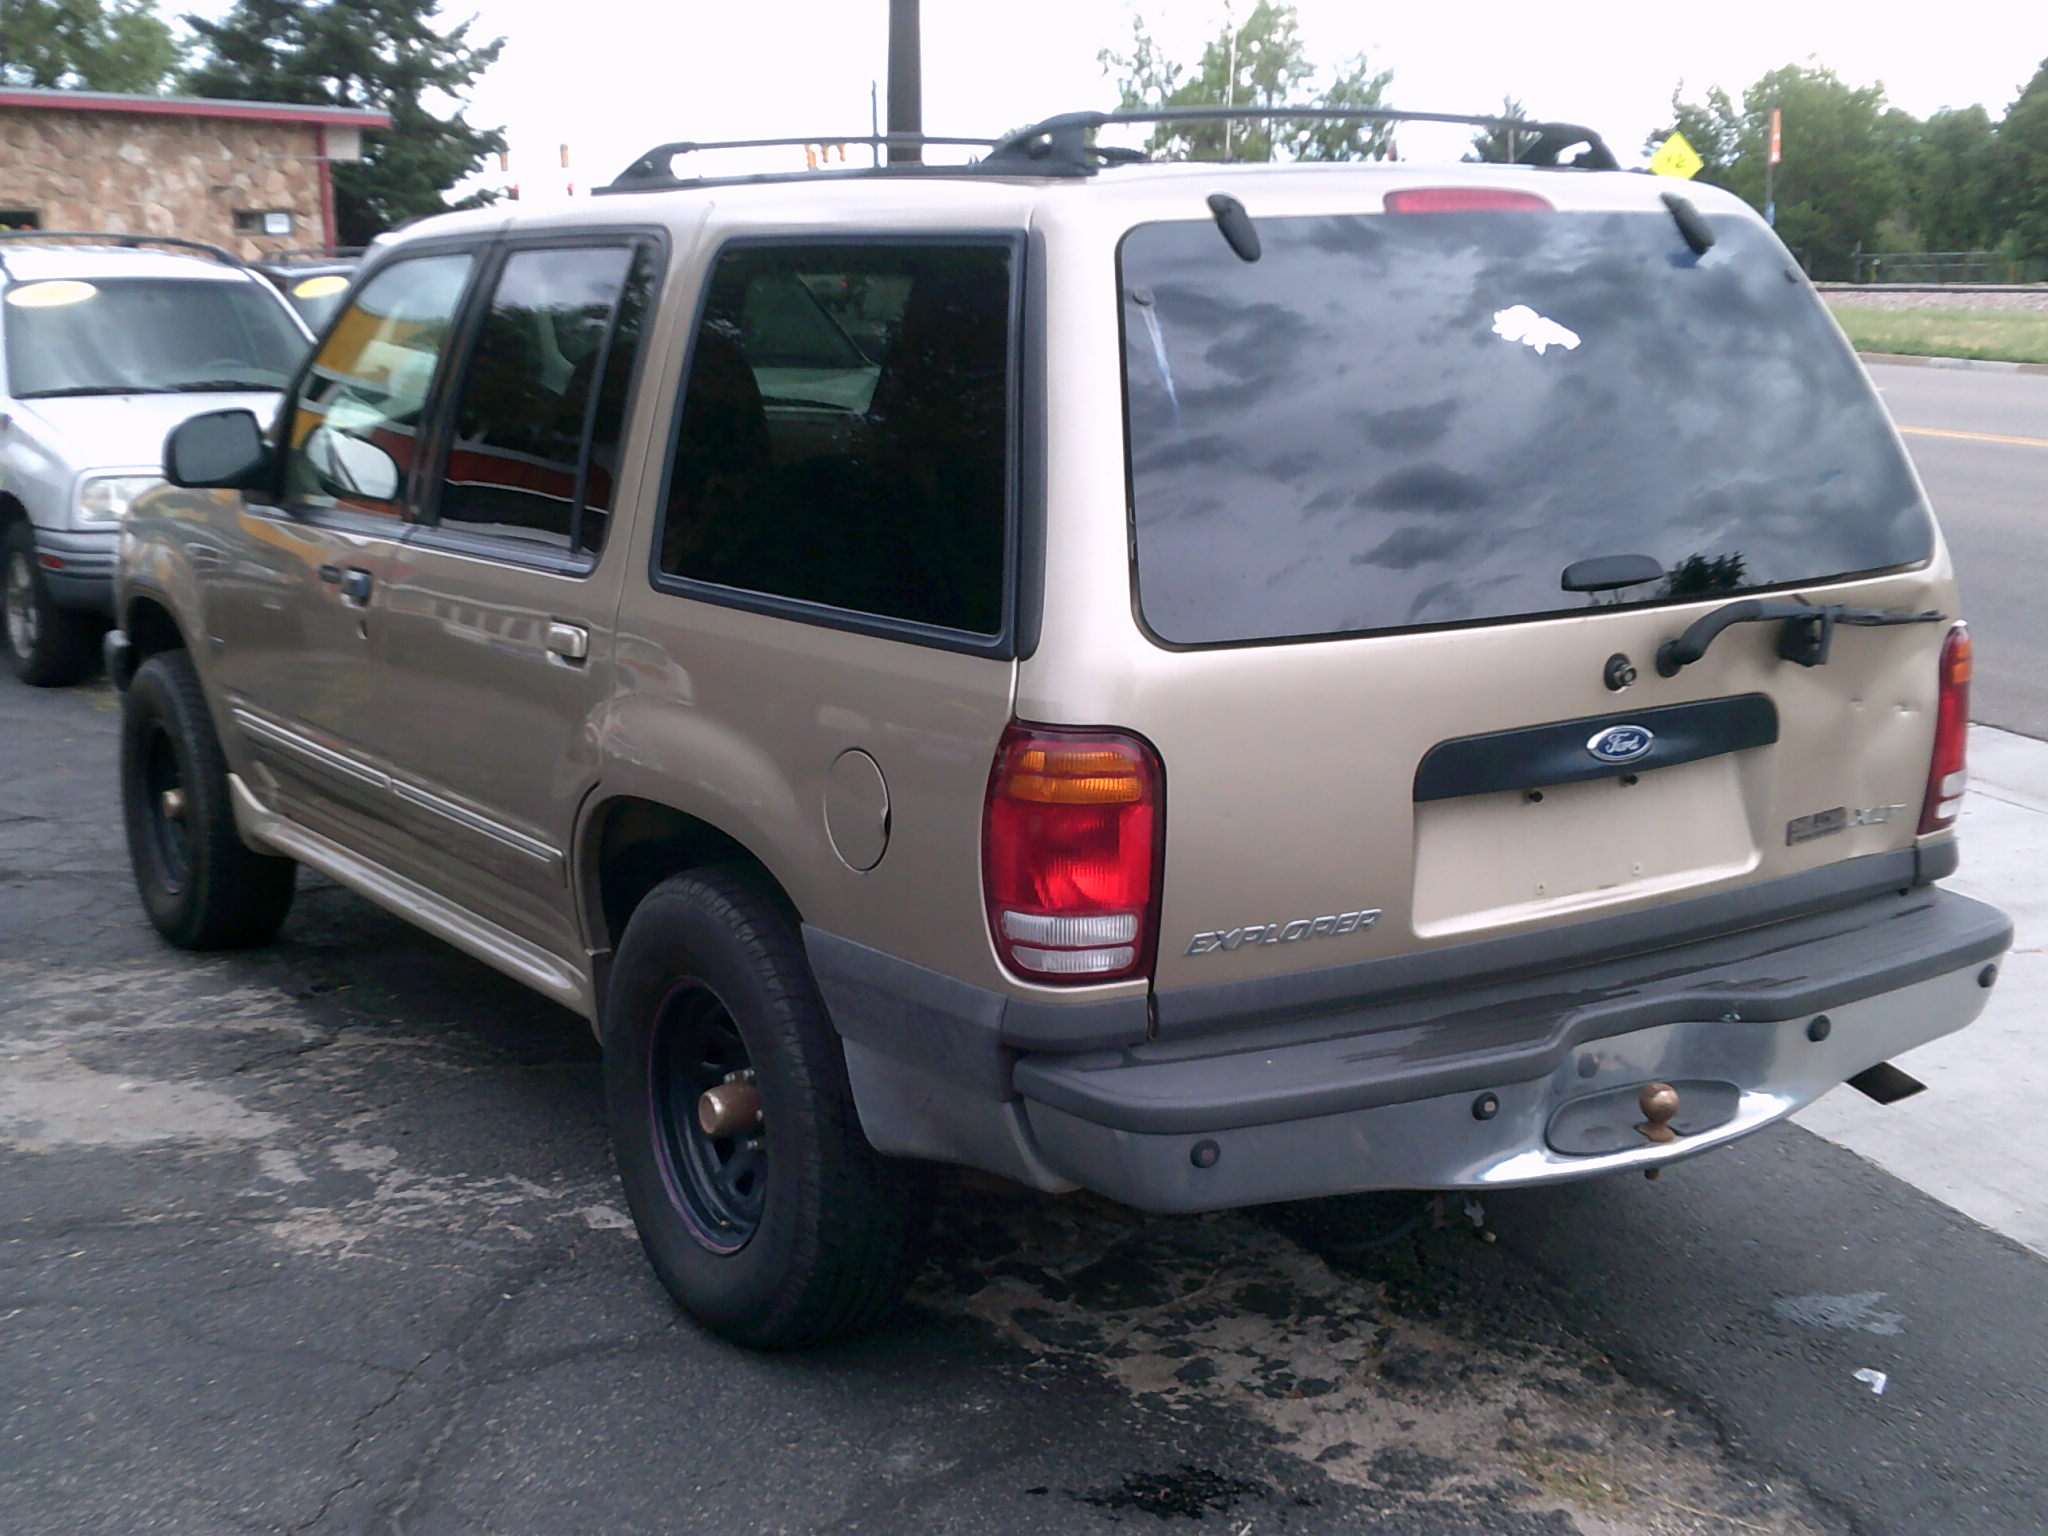 99 explorer rear view mr auto for 2002 ford explorer back window glass